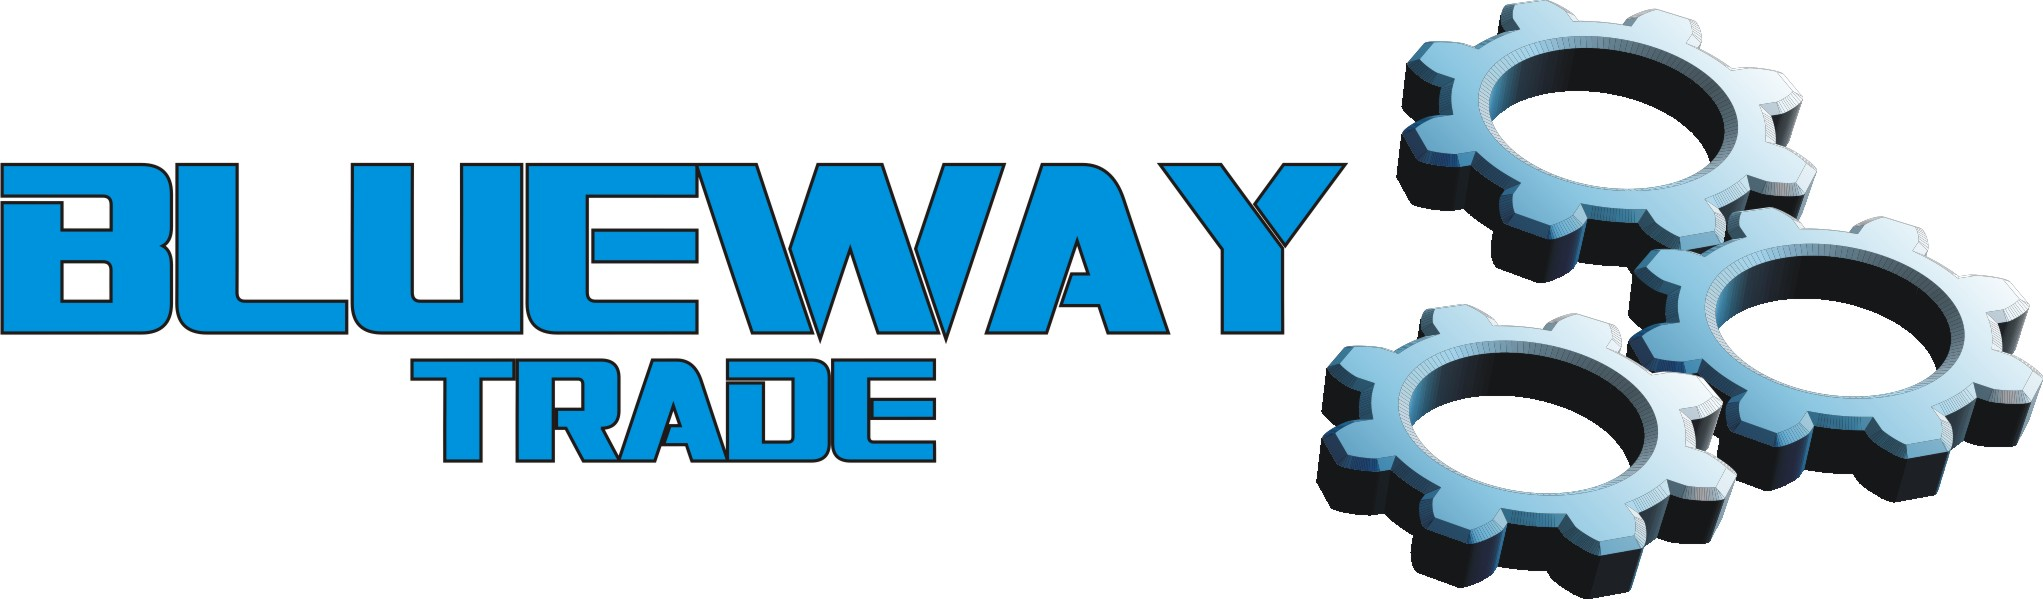 Blueway Trade Kft.